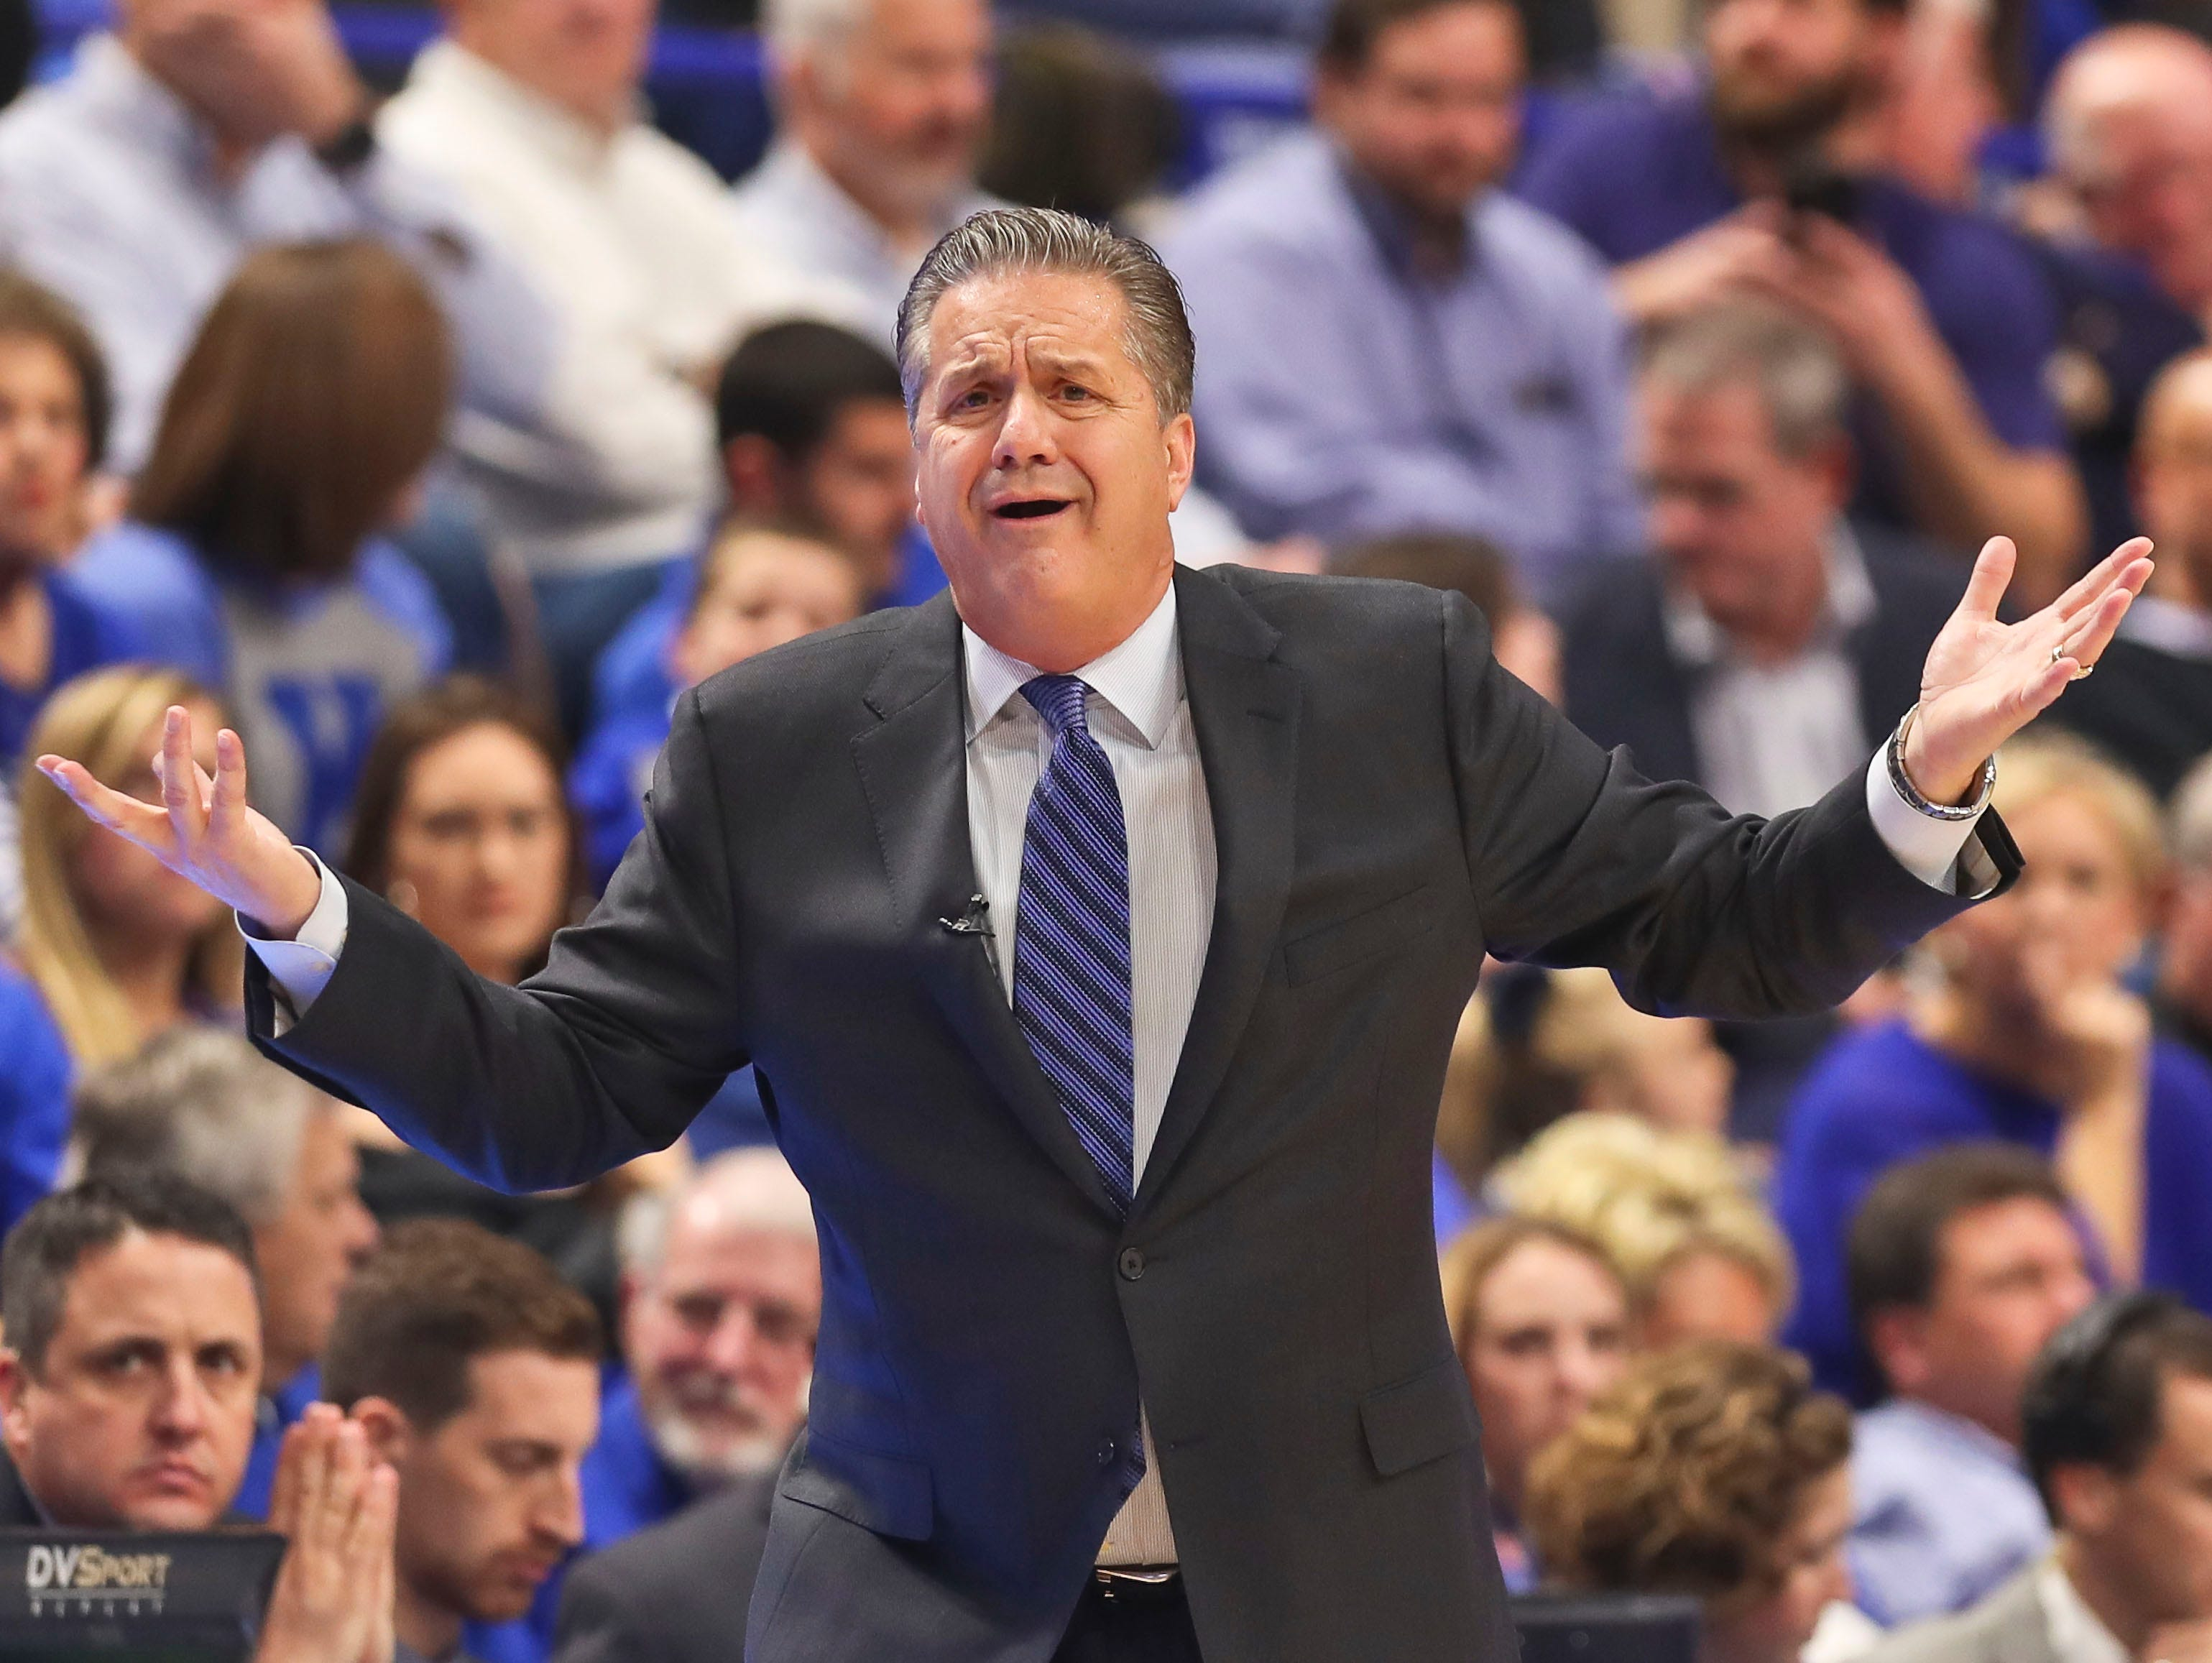 Kentucky's John Calipari was incredulous at some of the plays in the first half Friday night at Rupp Arena. UK struggled early in the first half, being down as much as 10 before leading by six at the half. Nov. 17, 2017